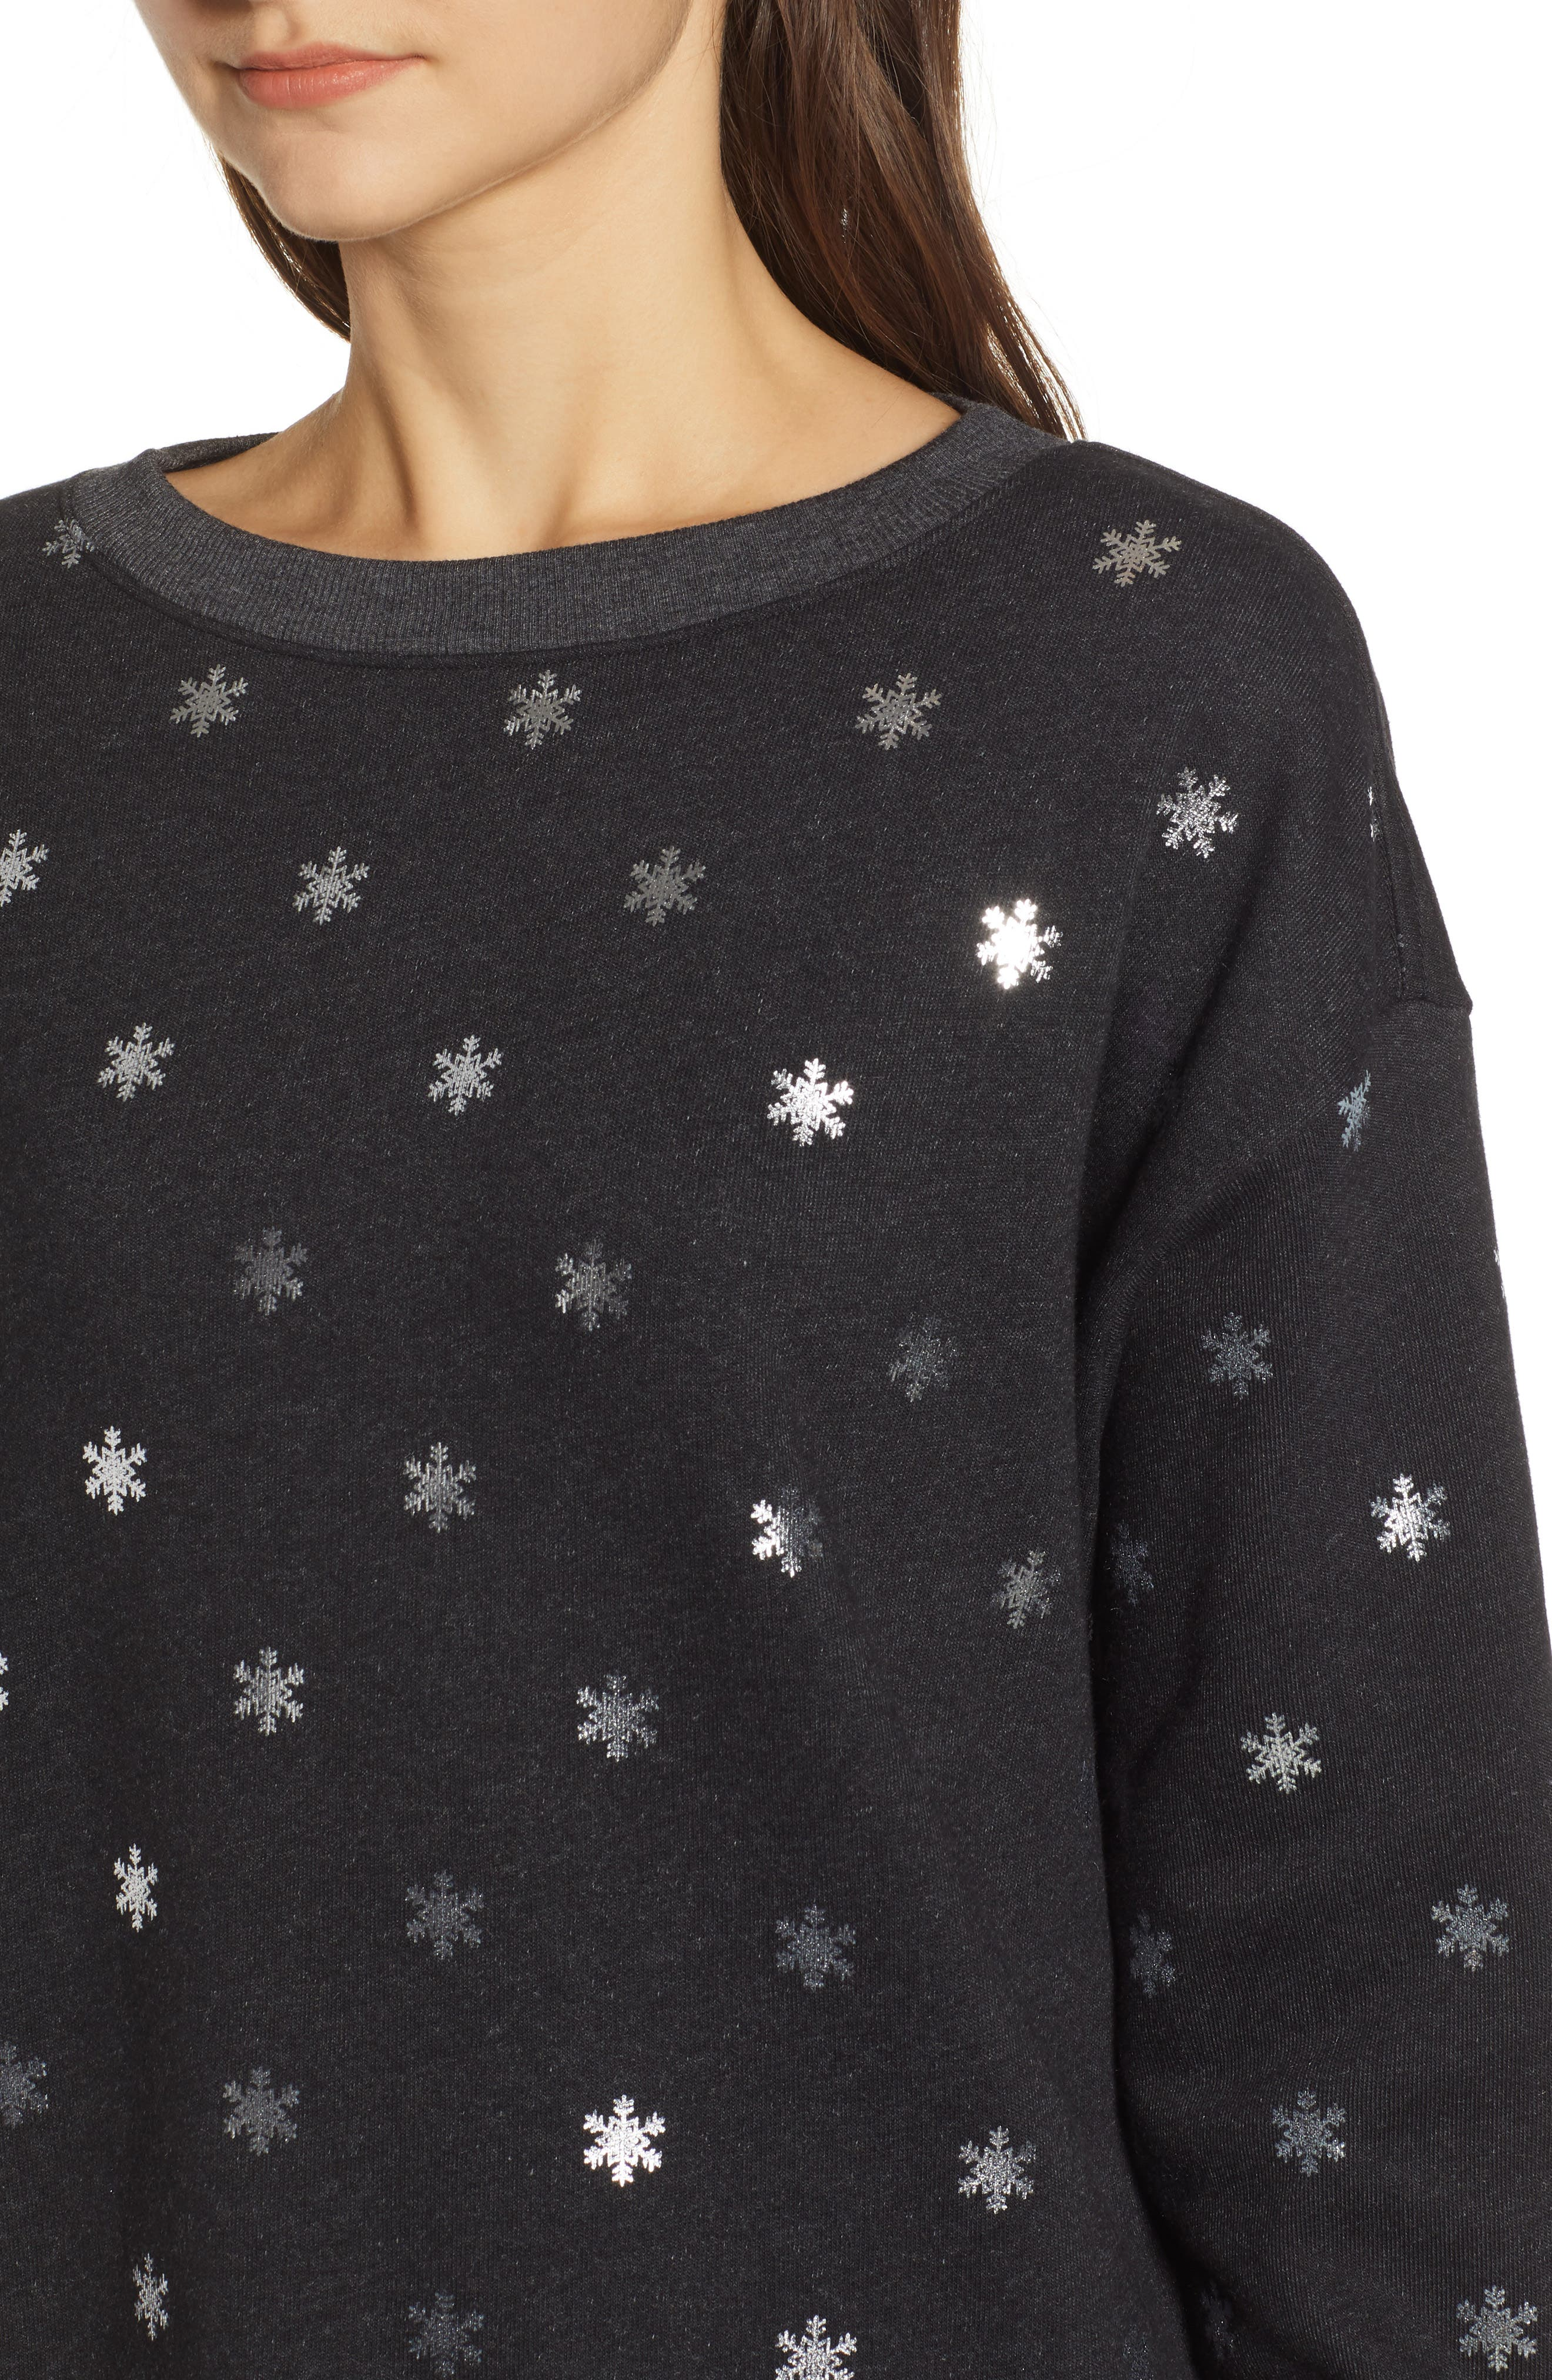 WILDFOX,                             Shimmery Snowflakes Road Trip Pullover,                             Alternate thumbnail 4, color,                             002